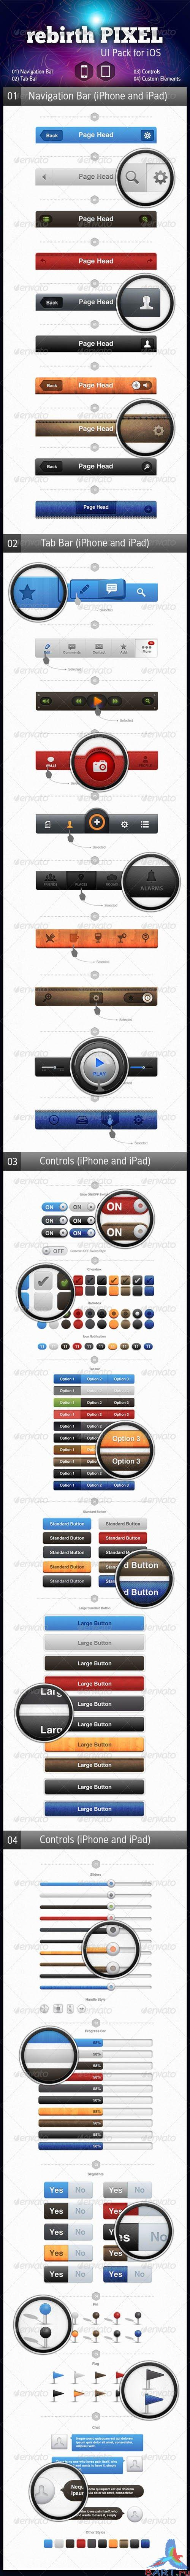 GraphicRiver - UI Pack for iOS by rebirthPIXEL 2577167